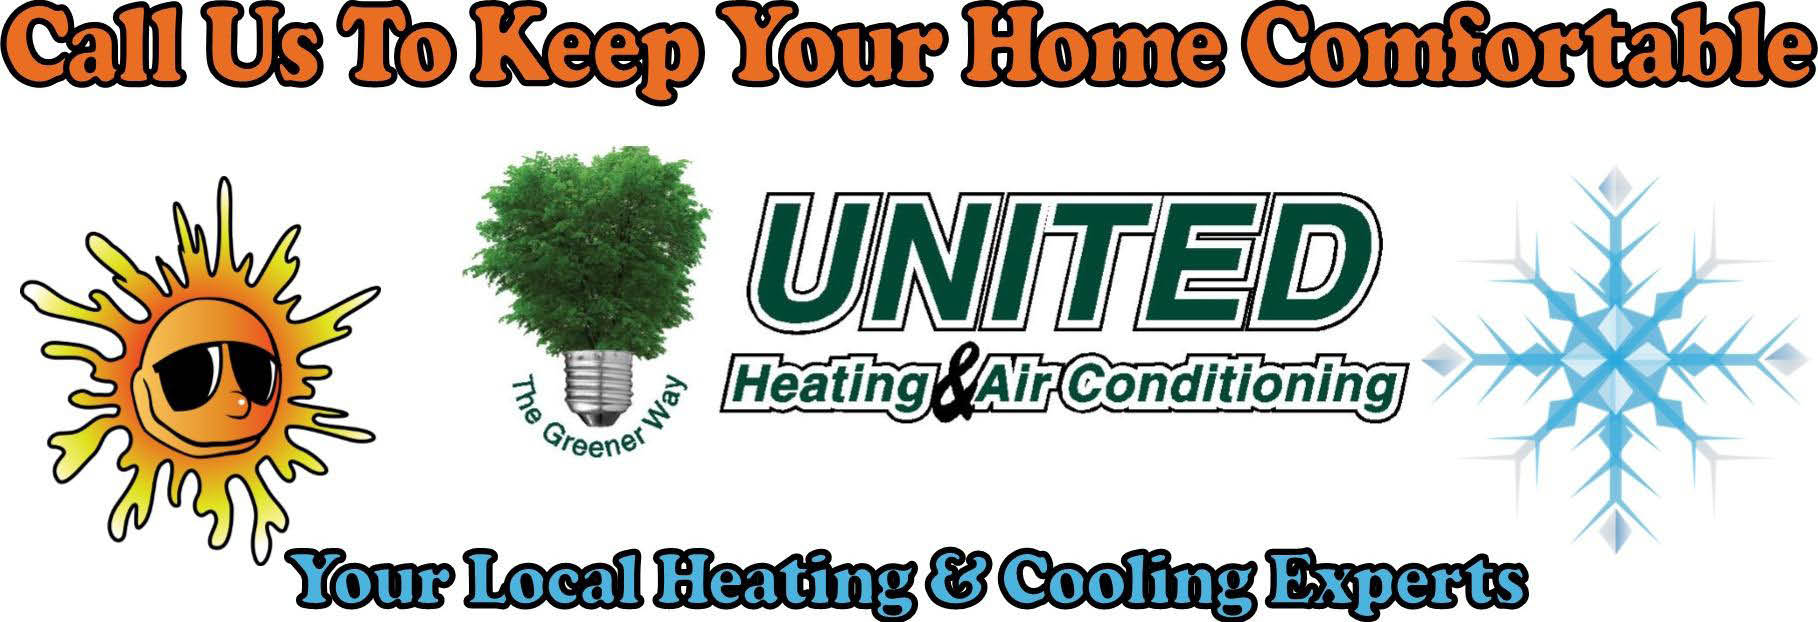 Heating and Cooling Service Experts in Des Moines, Iowa